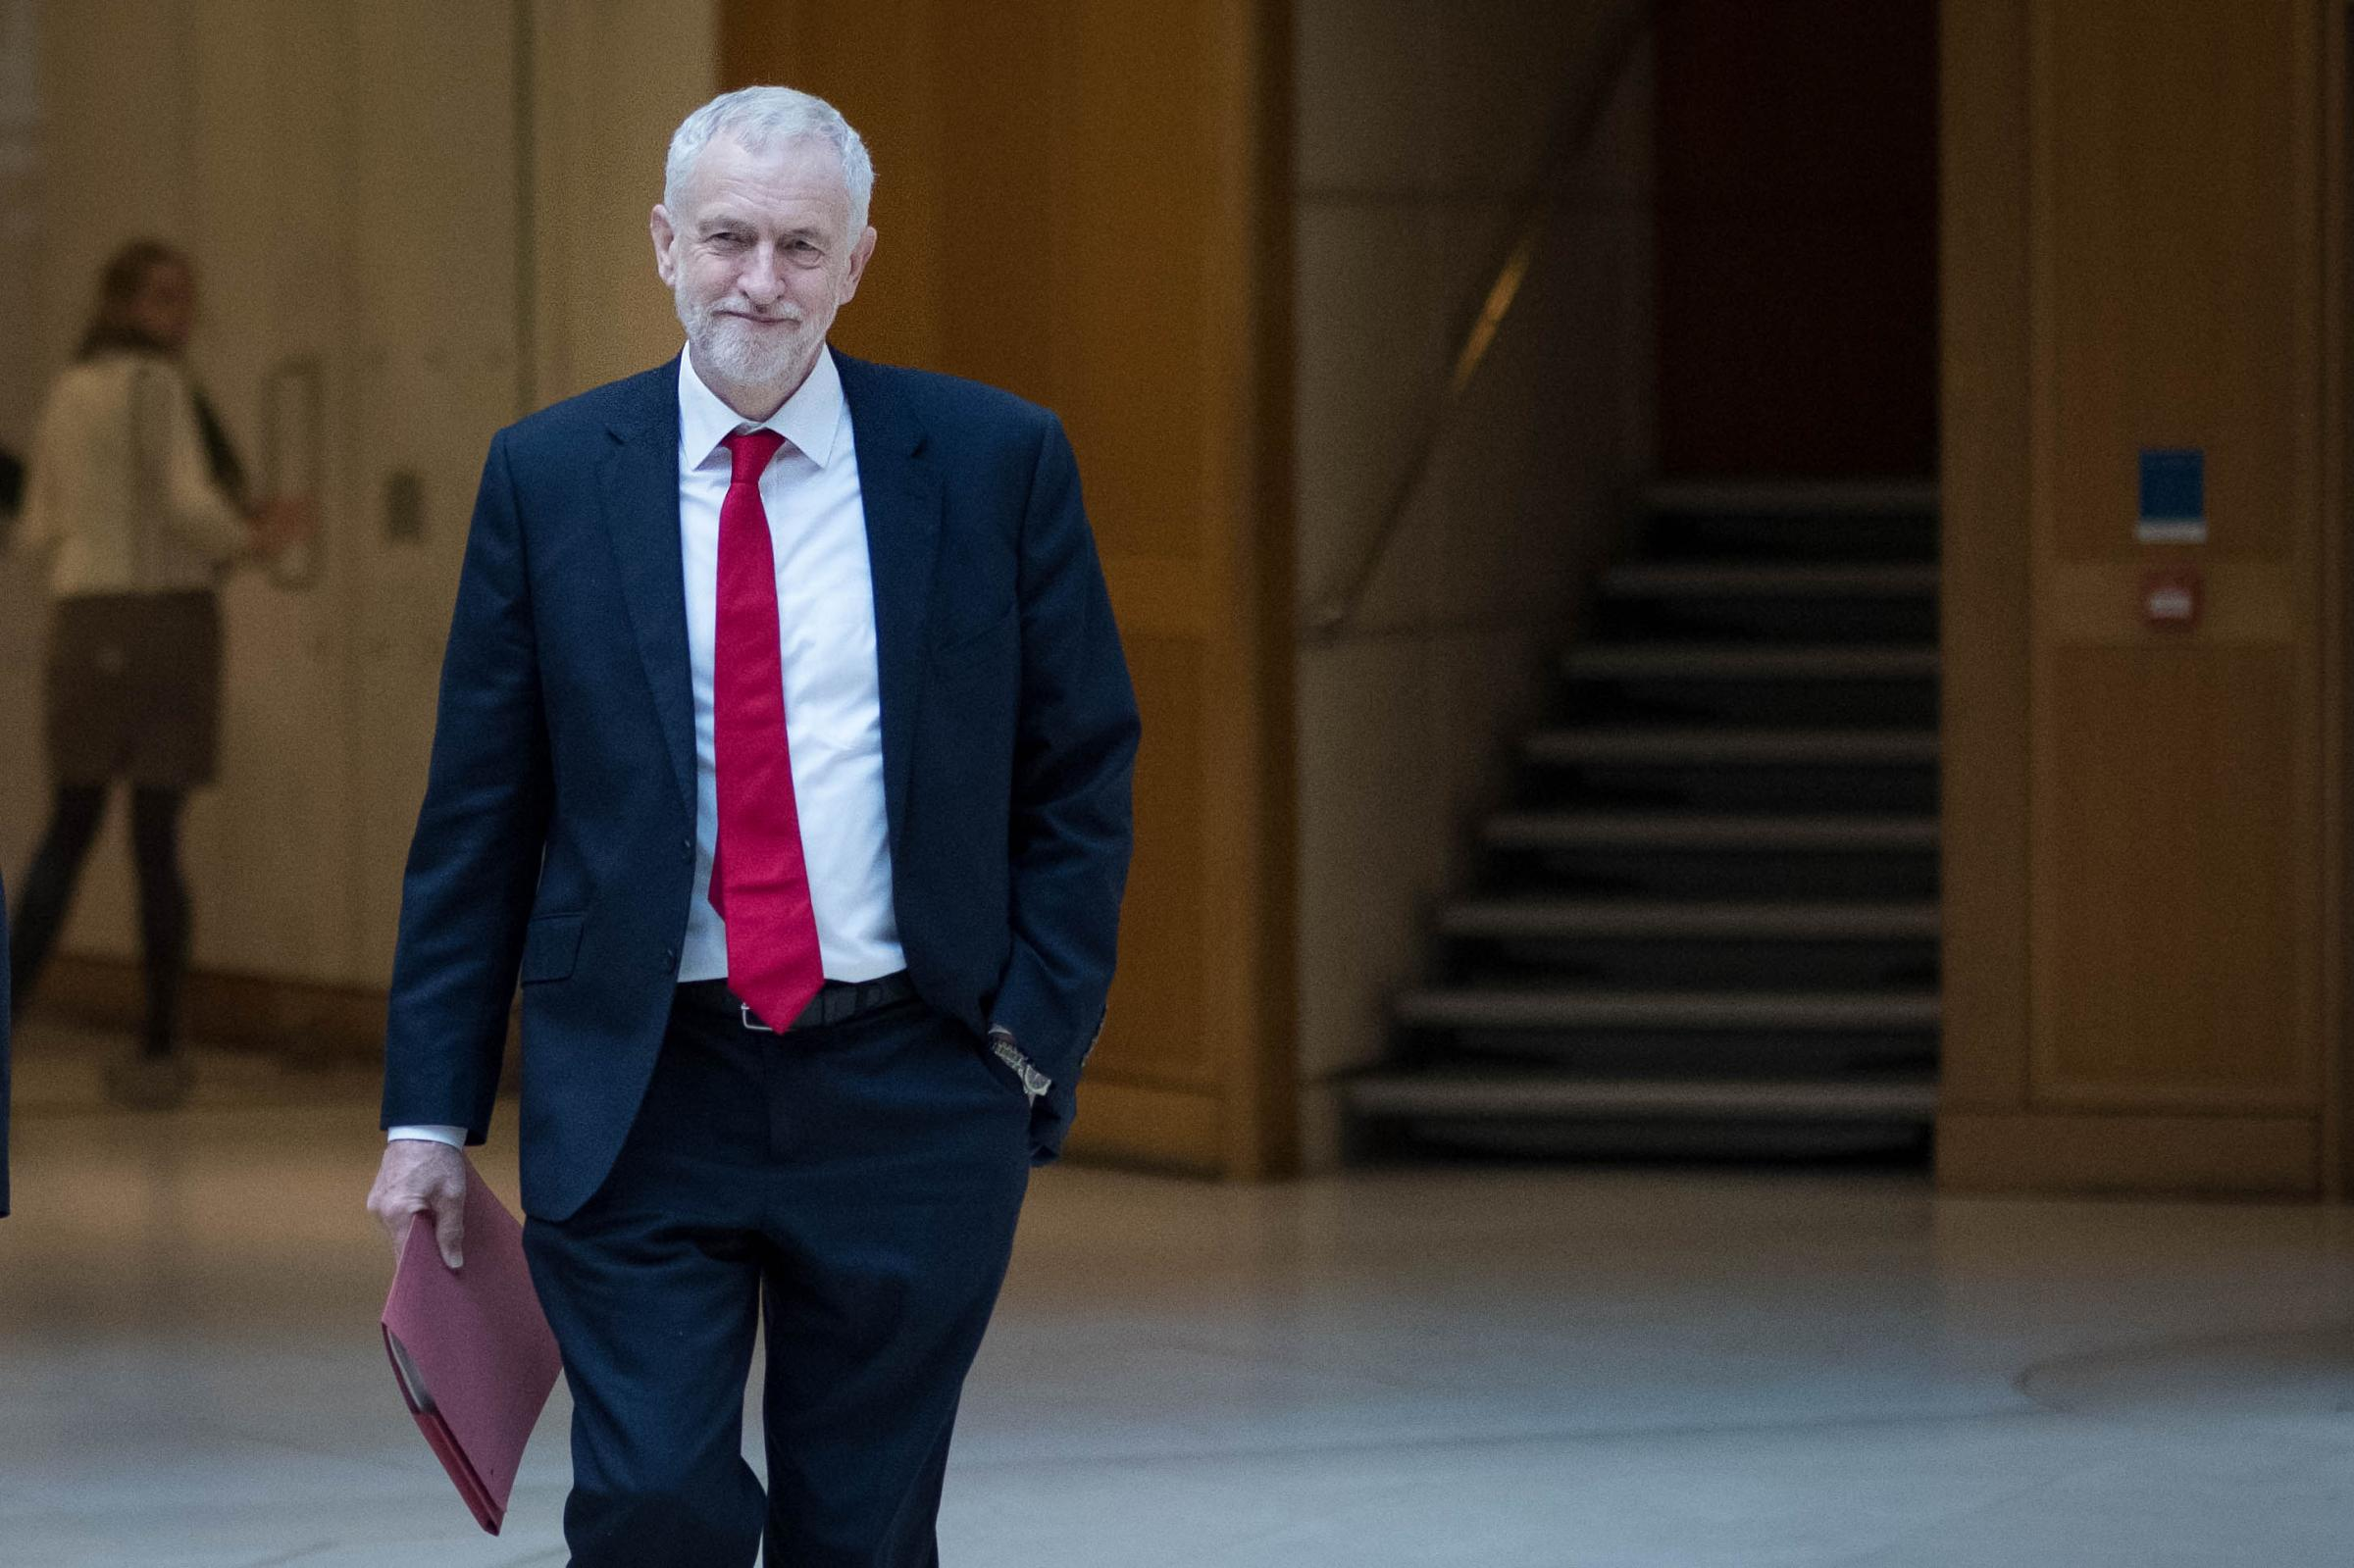 Labour leader Jeremy Corbyn is trying to find ways to make Brexit happen